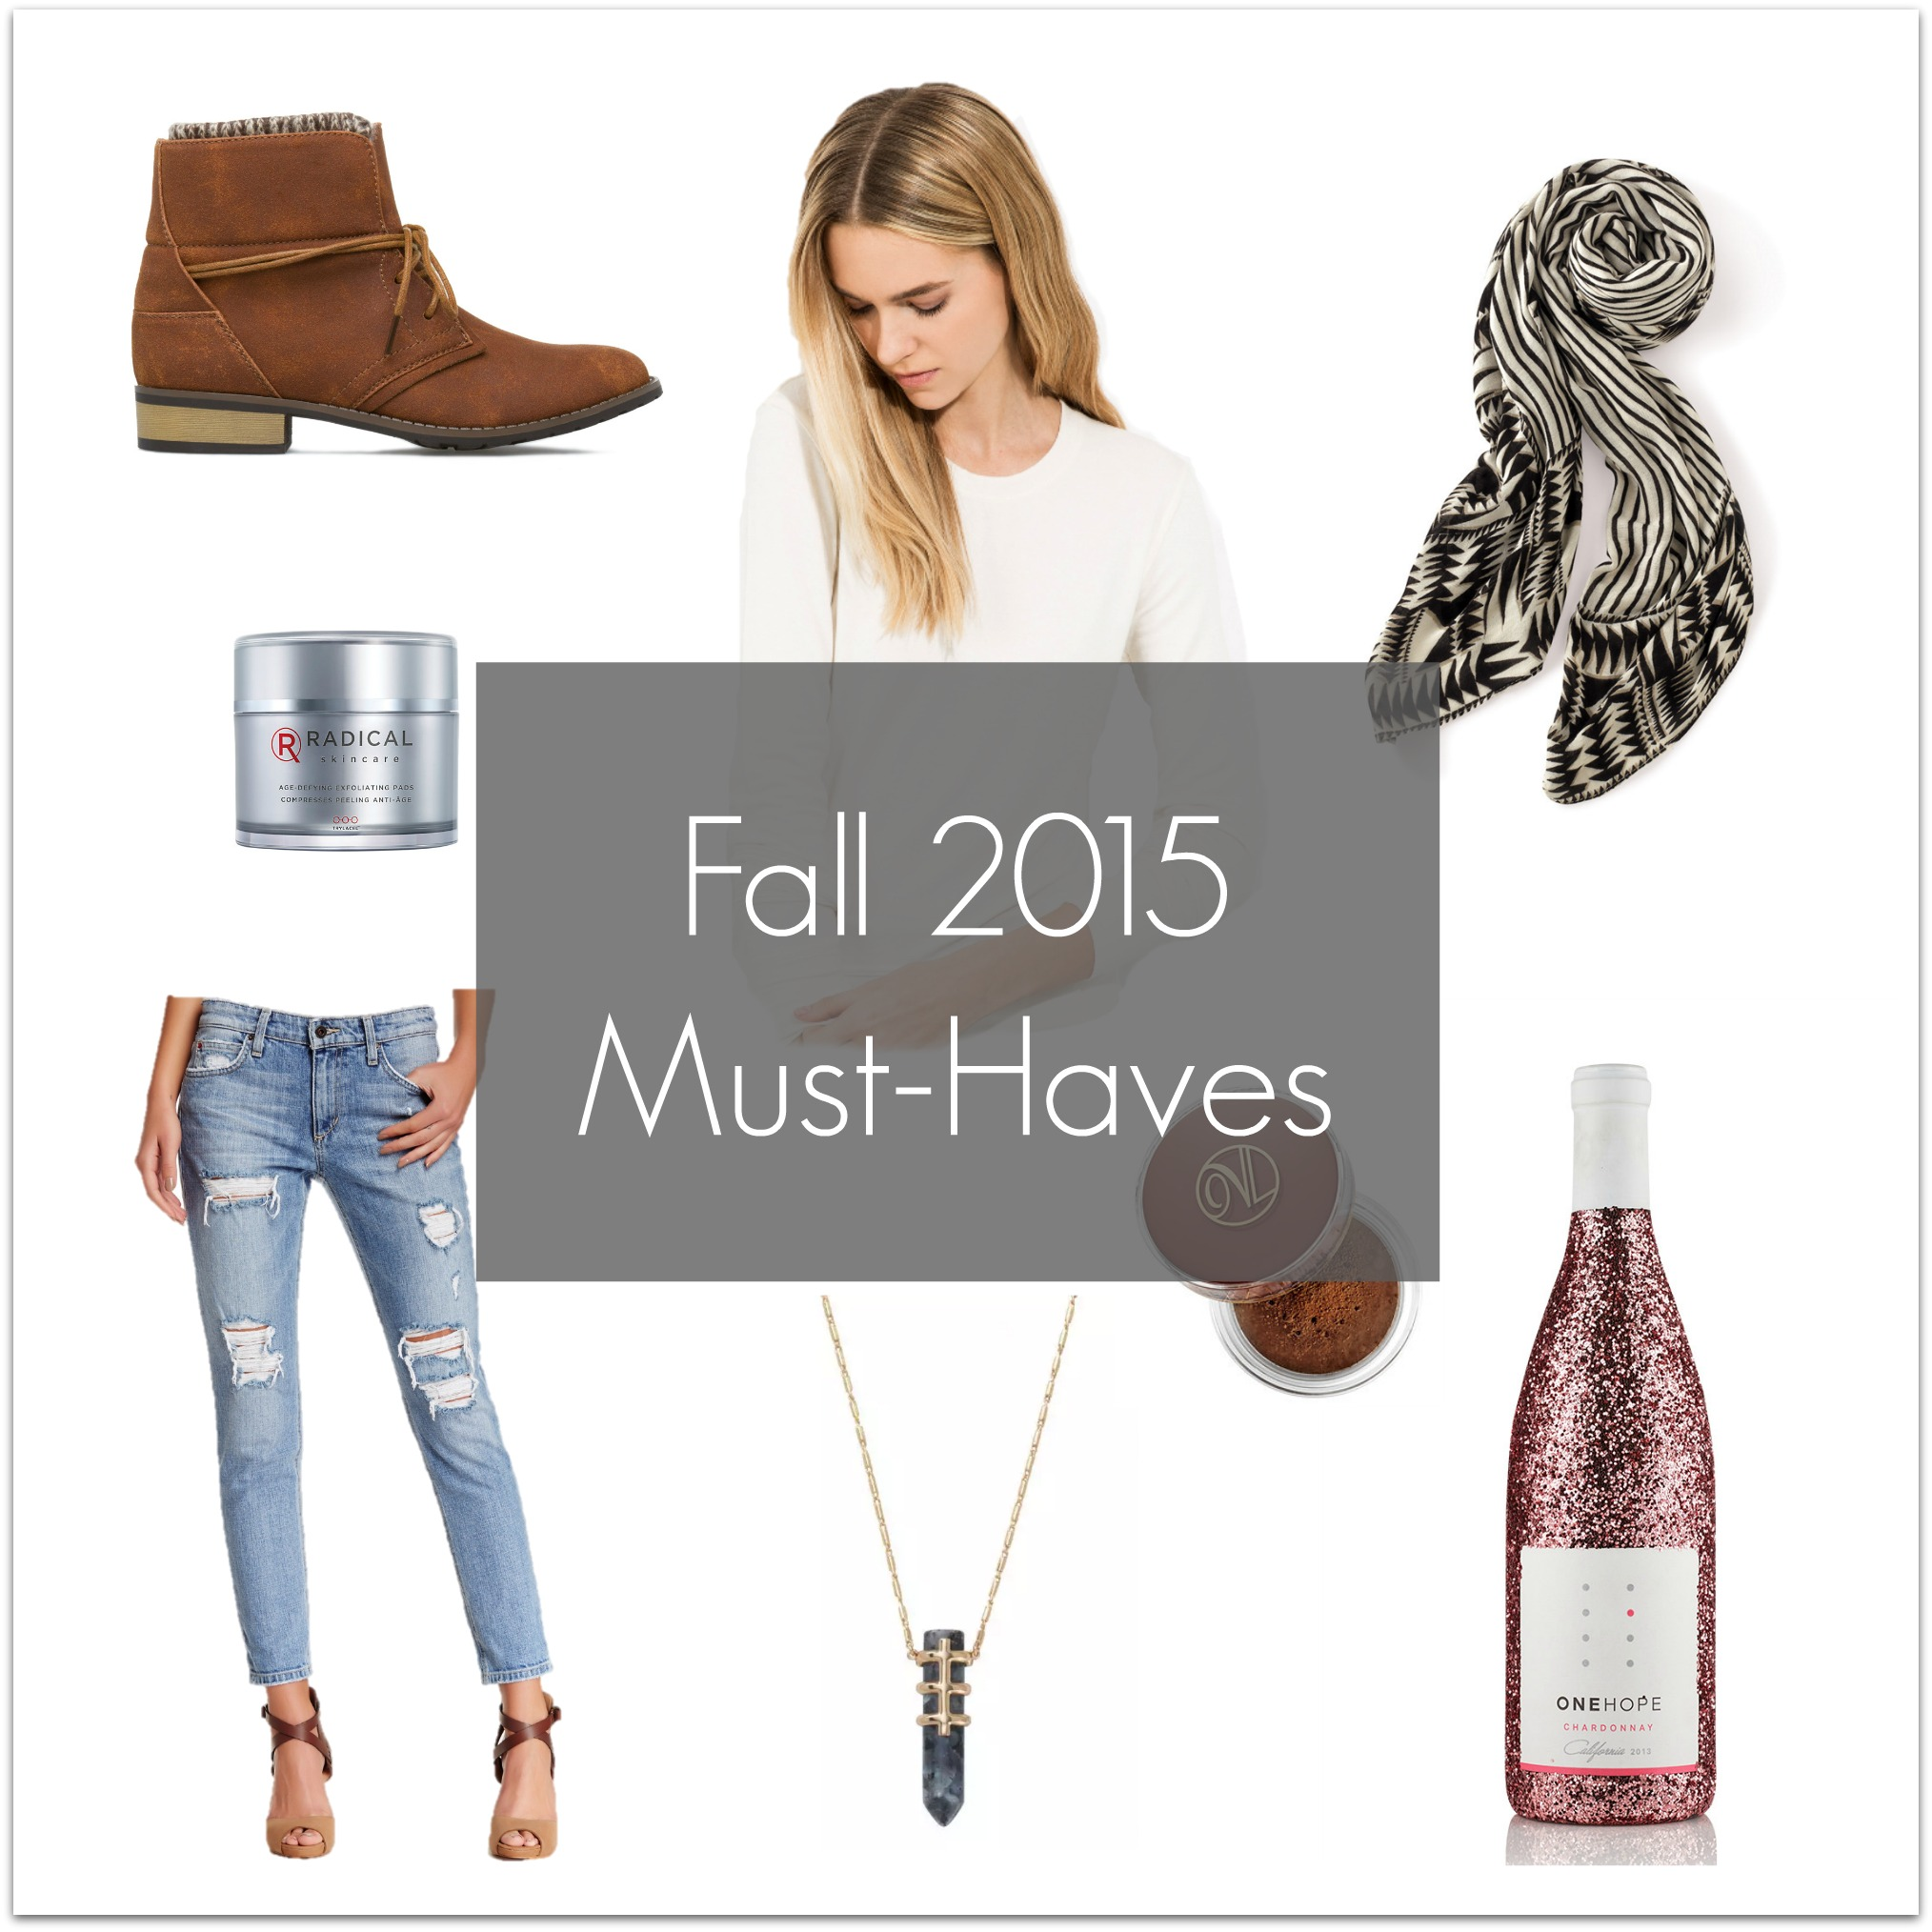 My Fall 2015 Fashion & Beauty Must-Haves